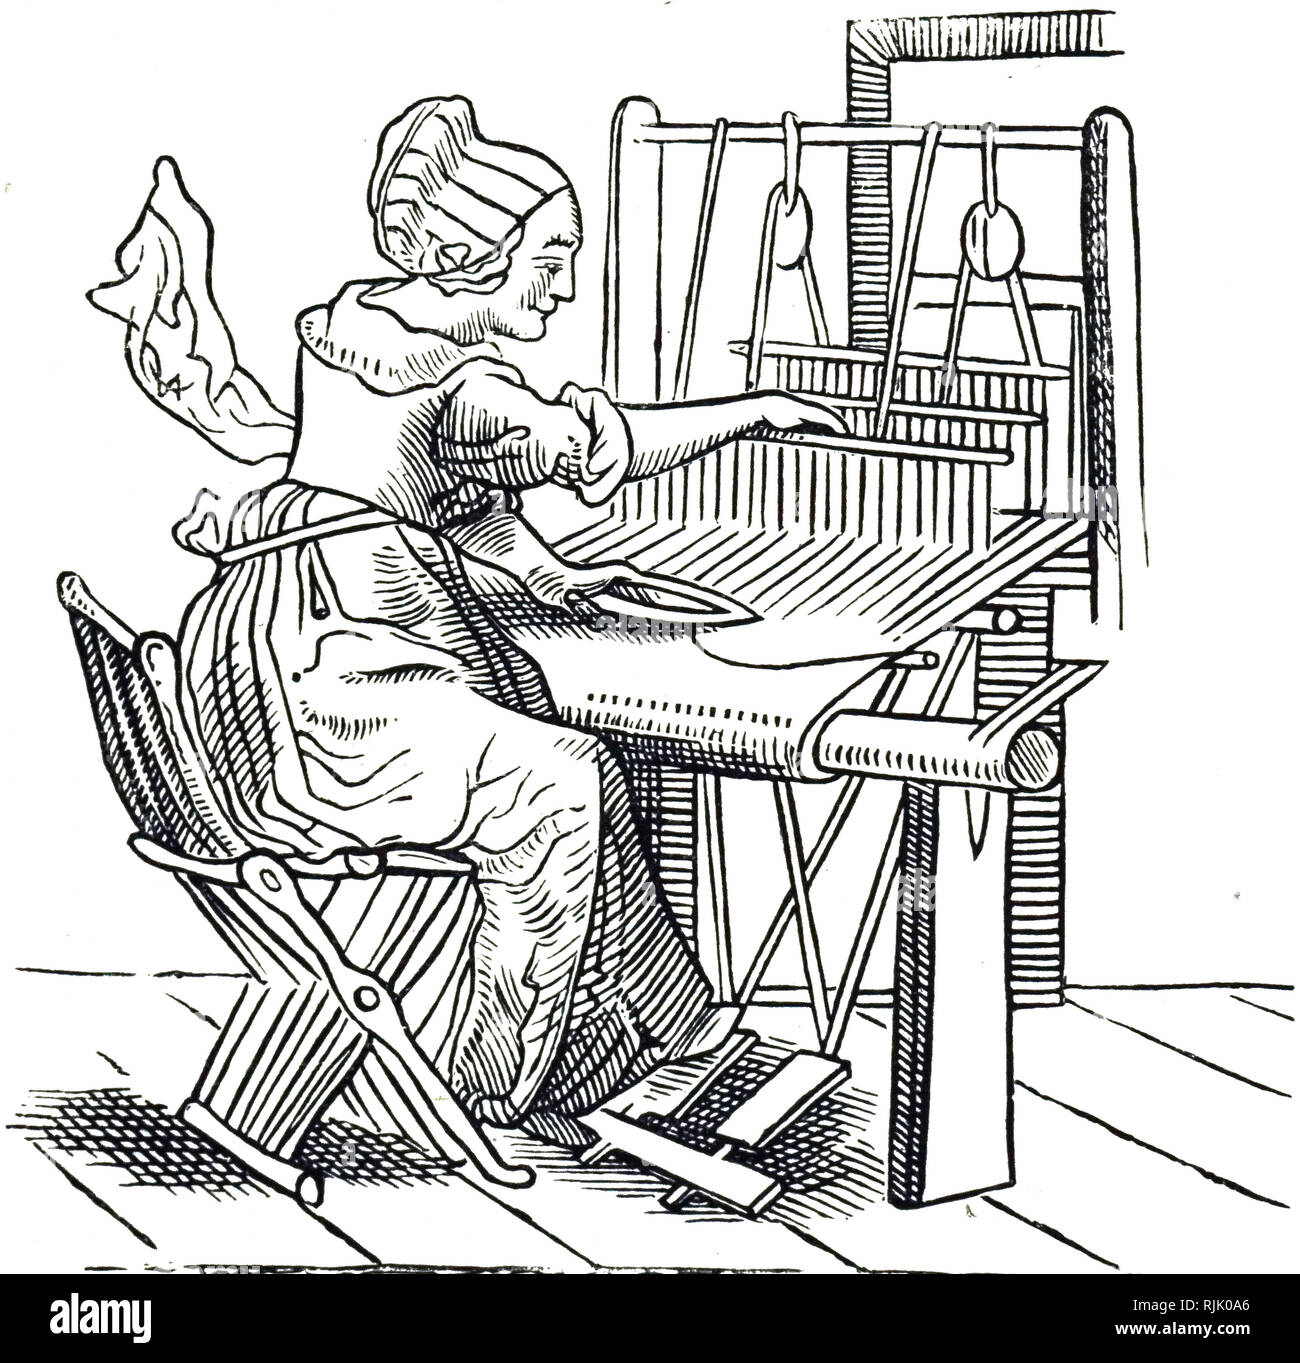 A woodcut engraving depicting a woman weaving. Woodcut by Hans Holbein the Younger (1497-1543) a German artist and printmaker. Dated 16th century - Stock Image